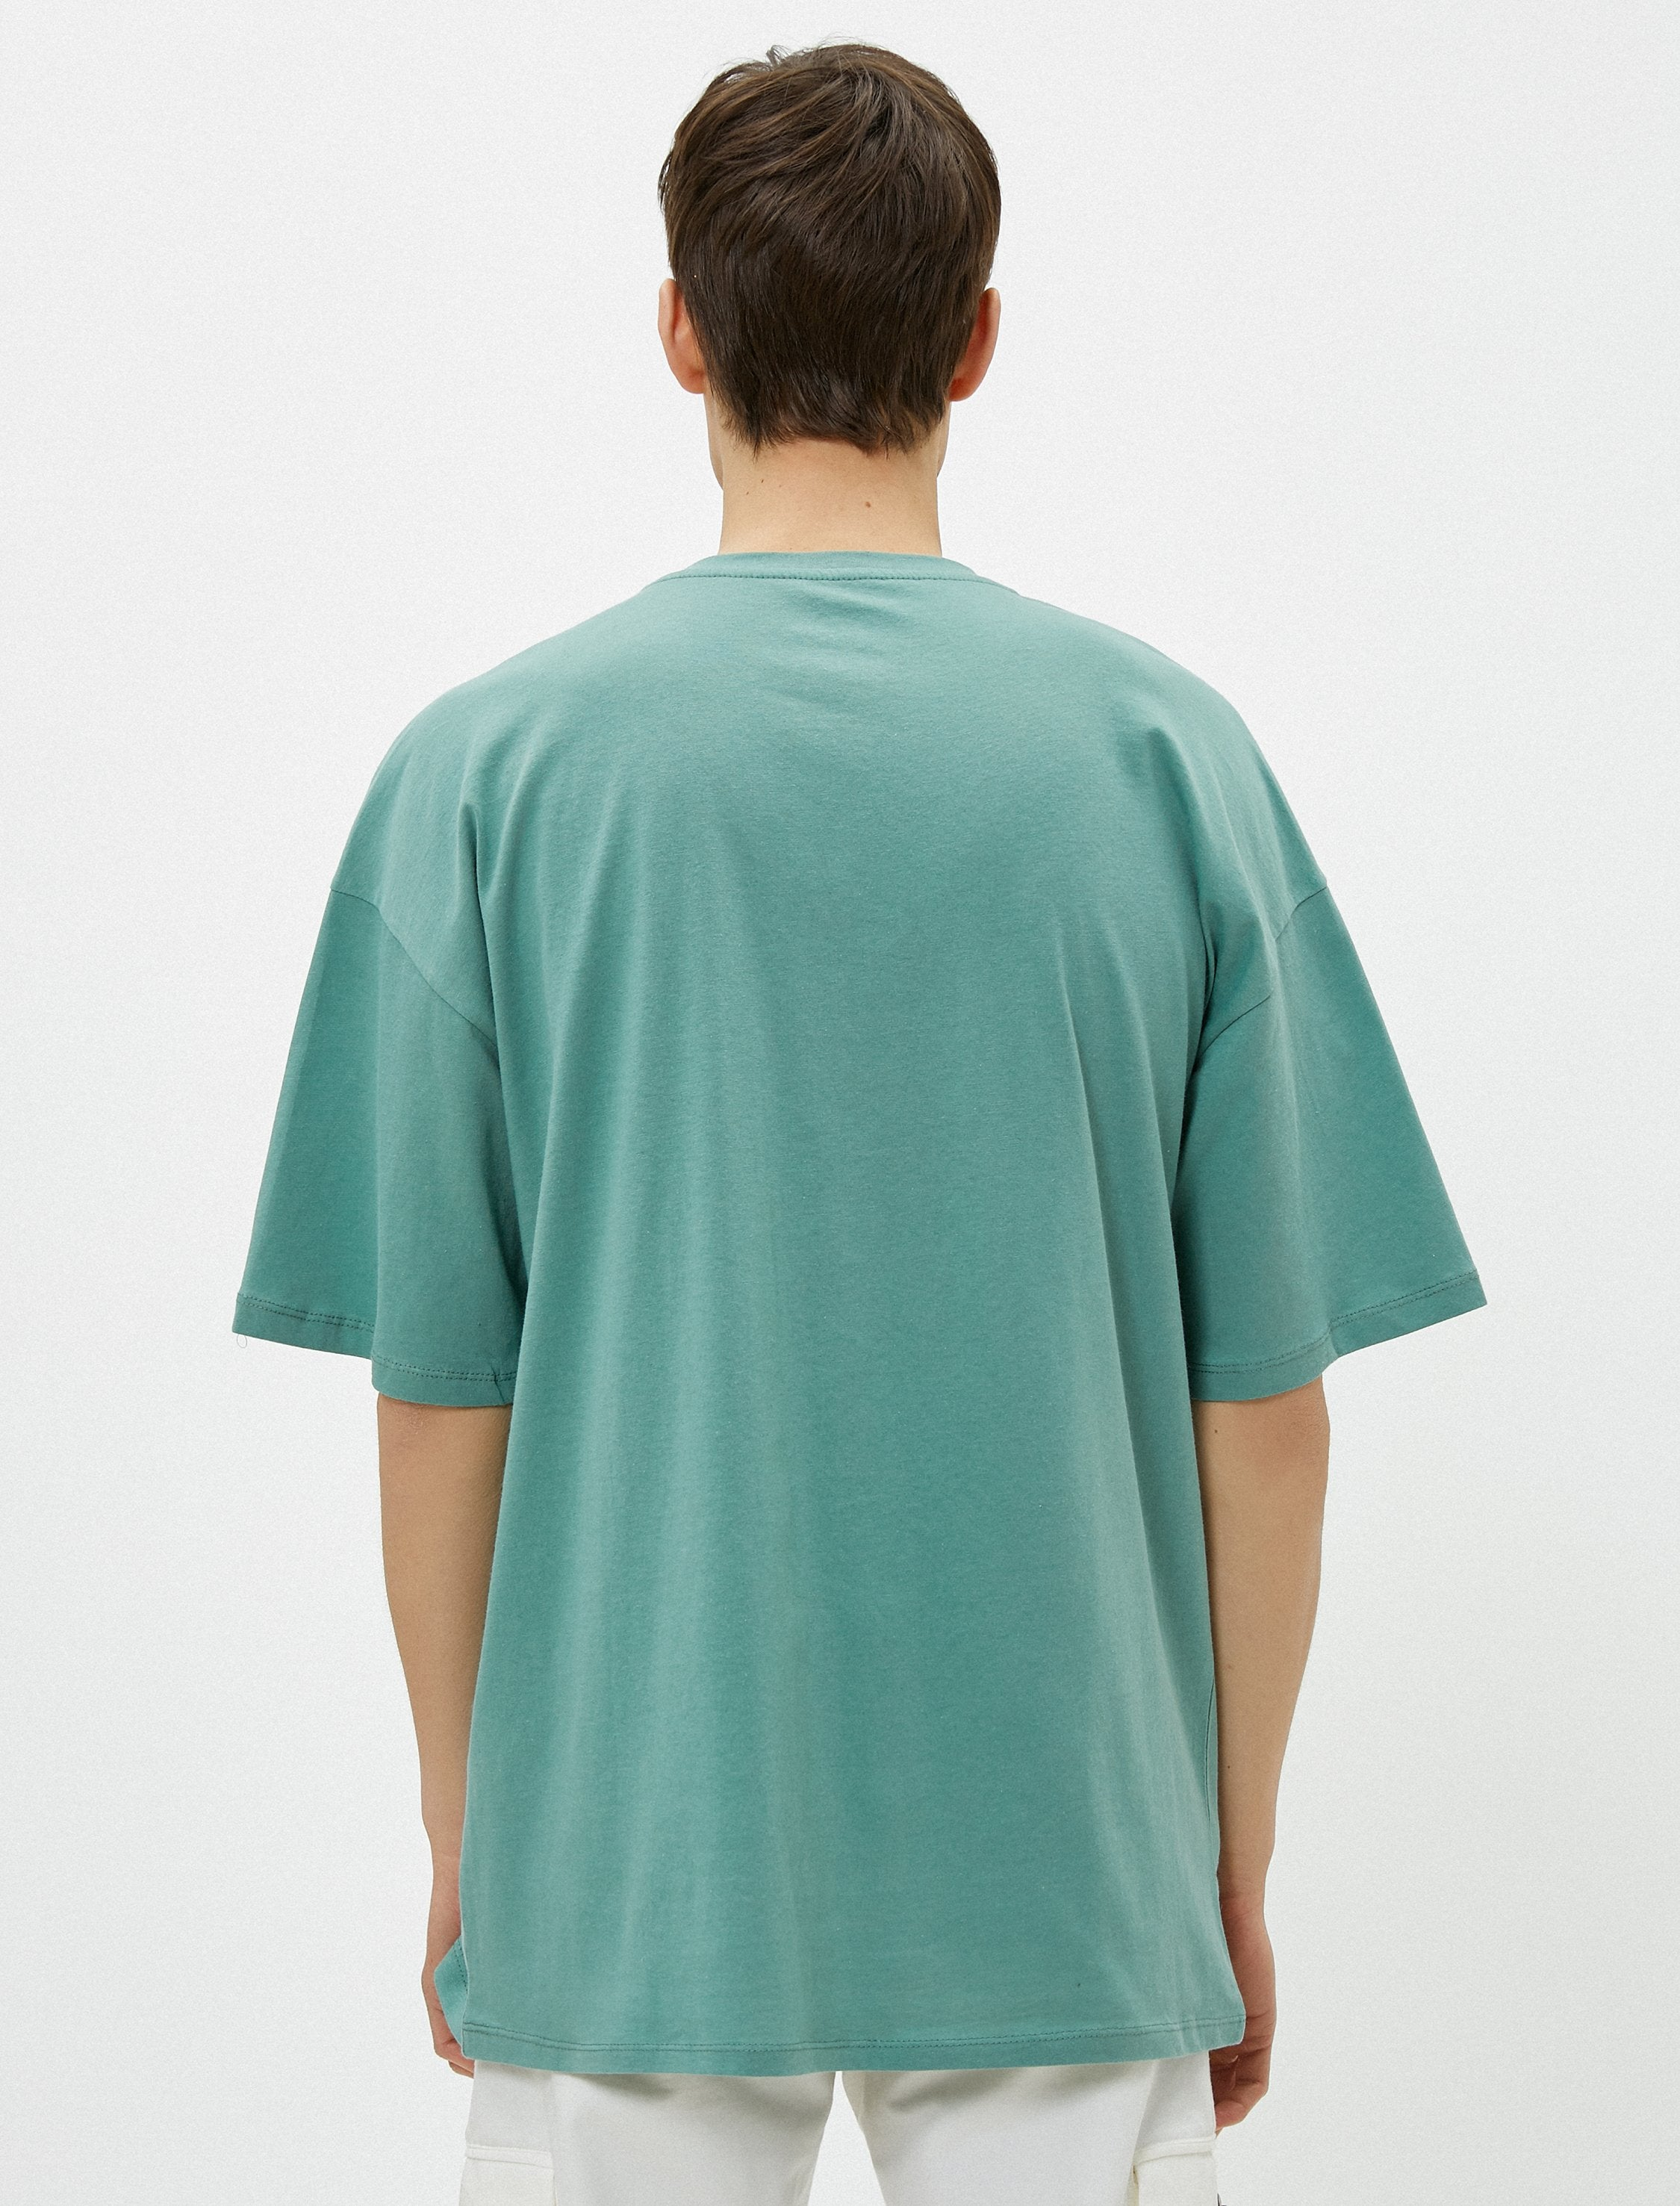 Oversize Basic Tshirt in Teal Green